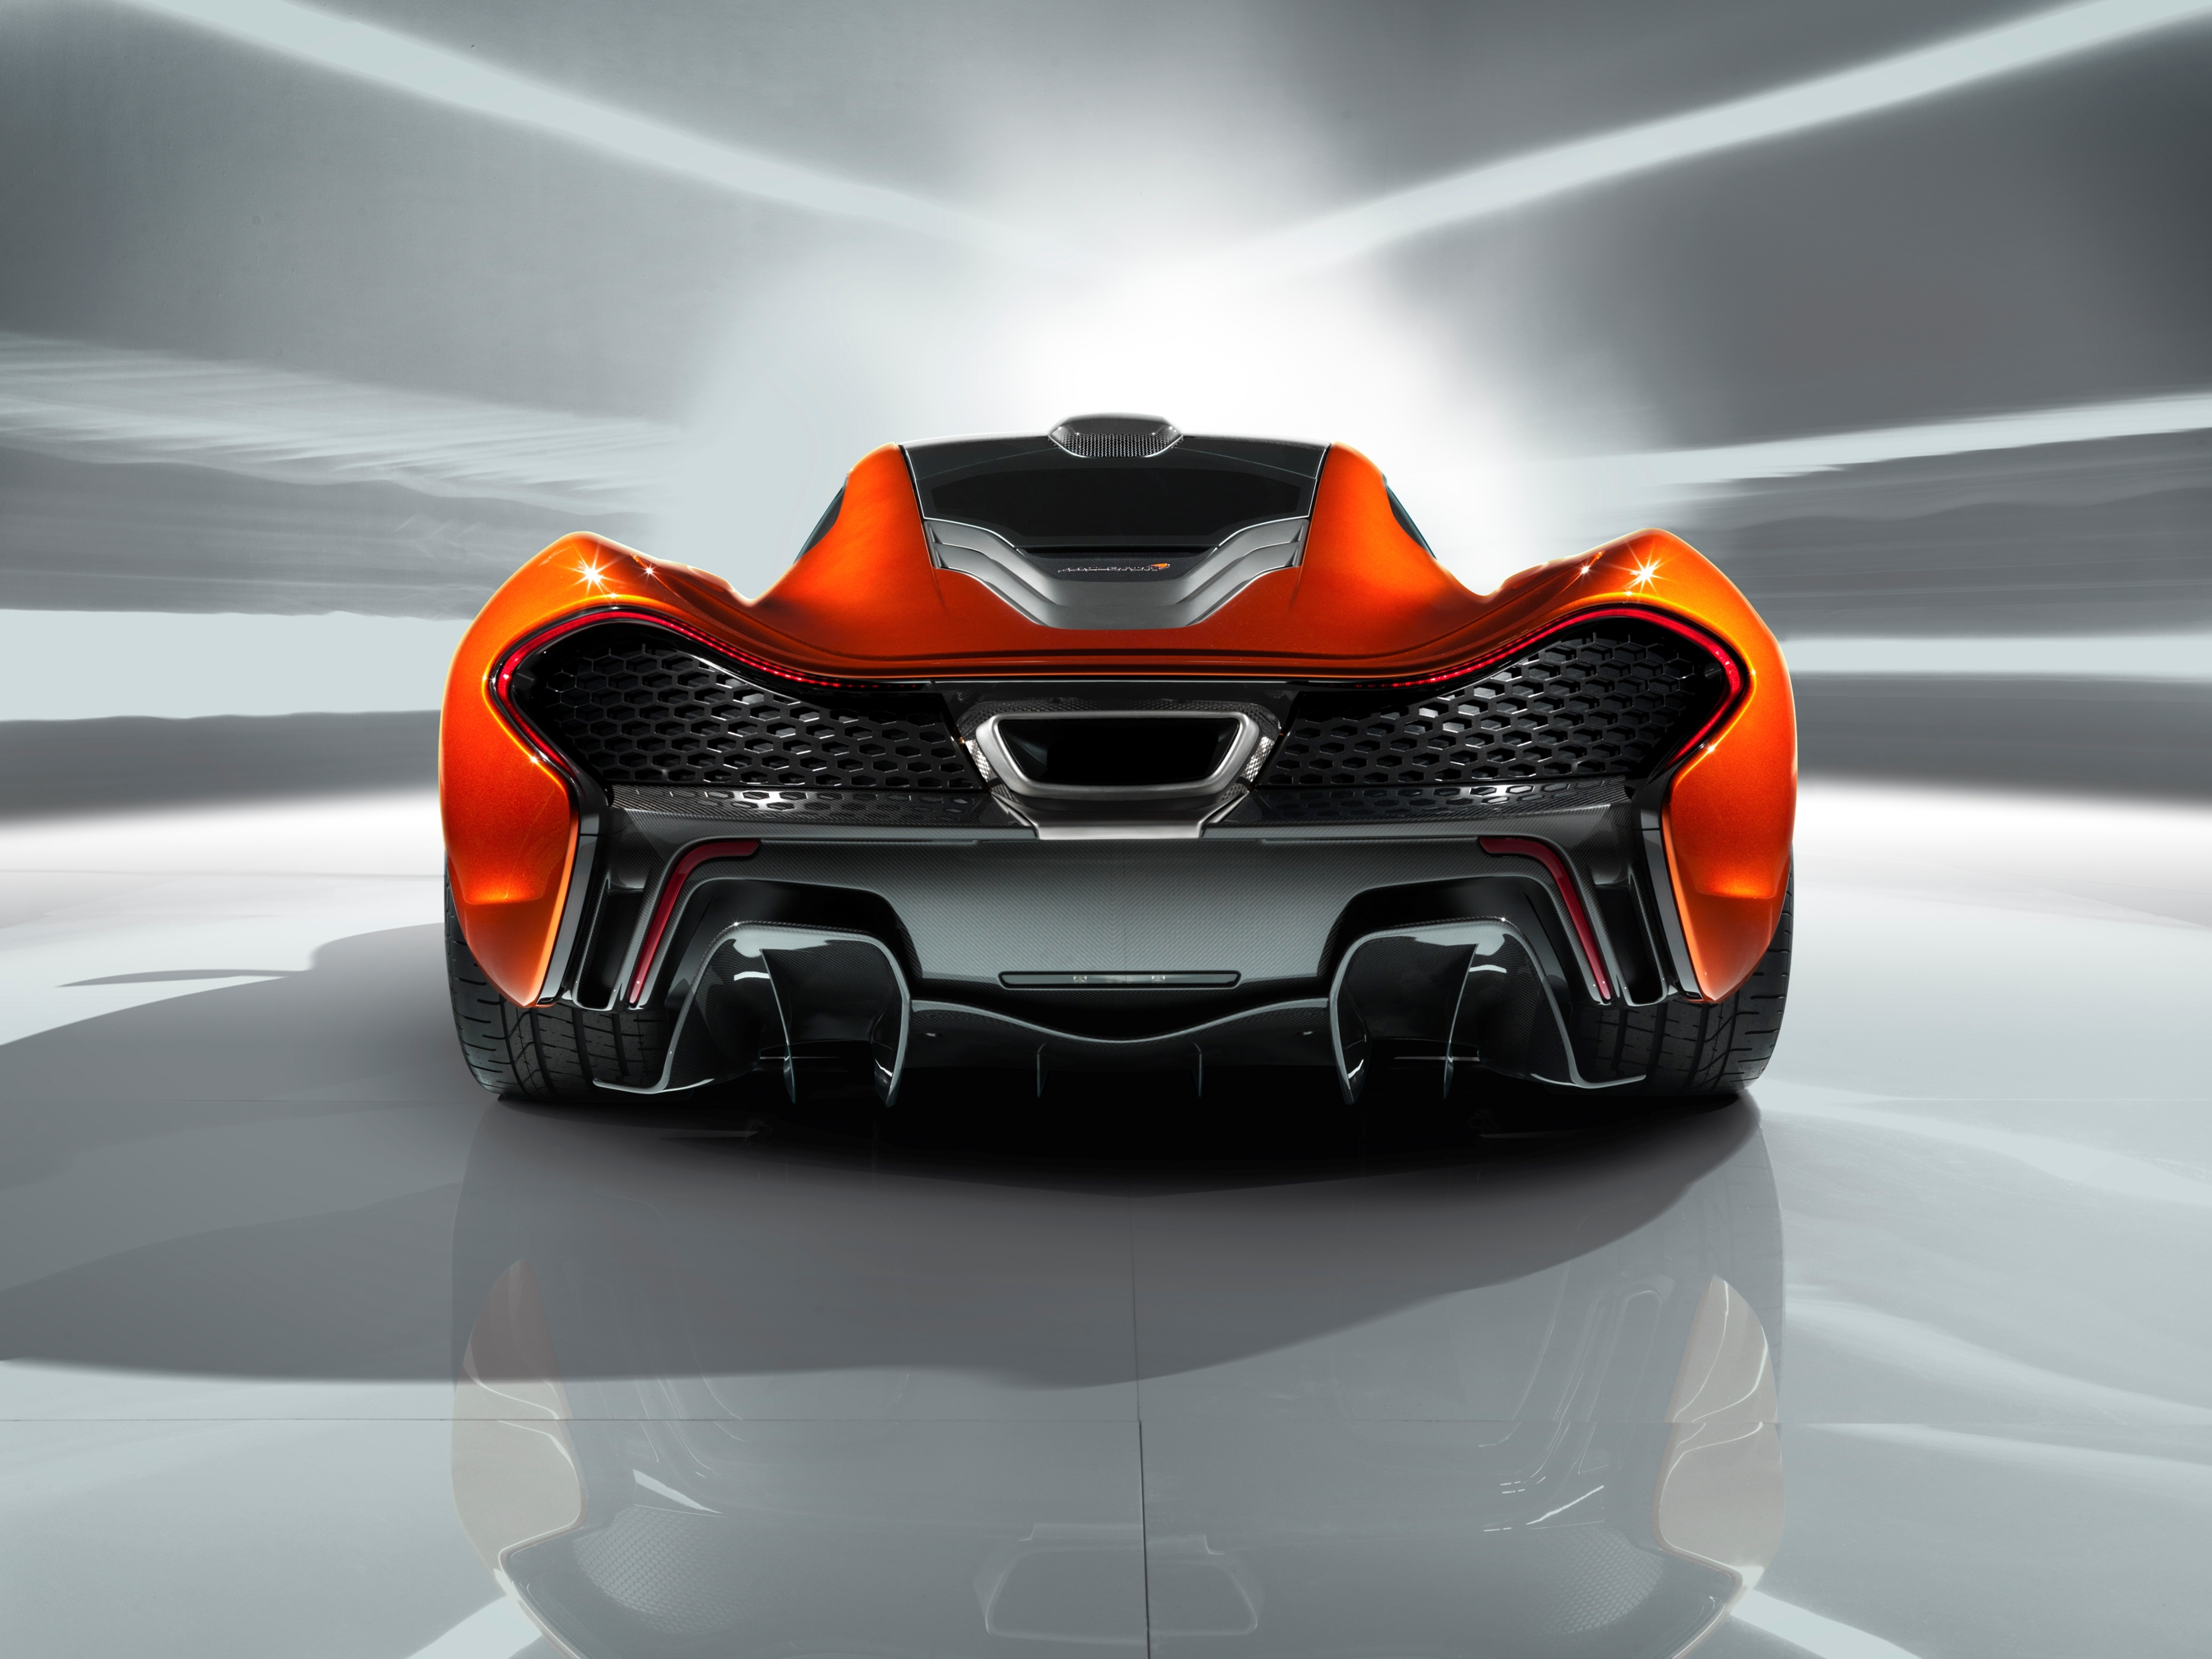 McLaren P1 Paris design concept - rear low detail